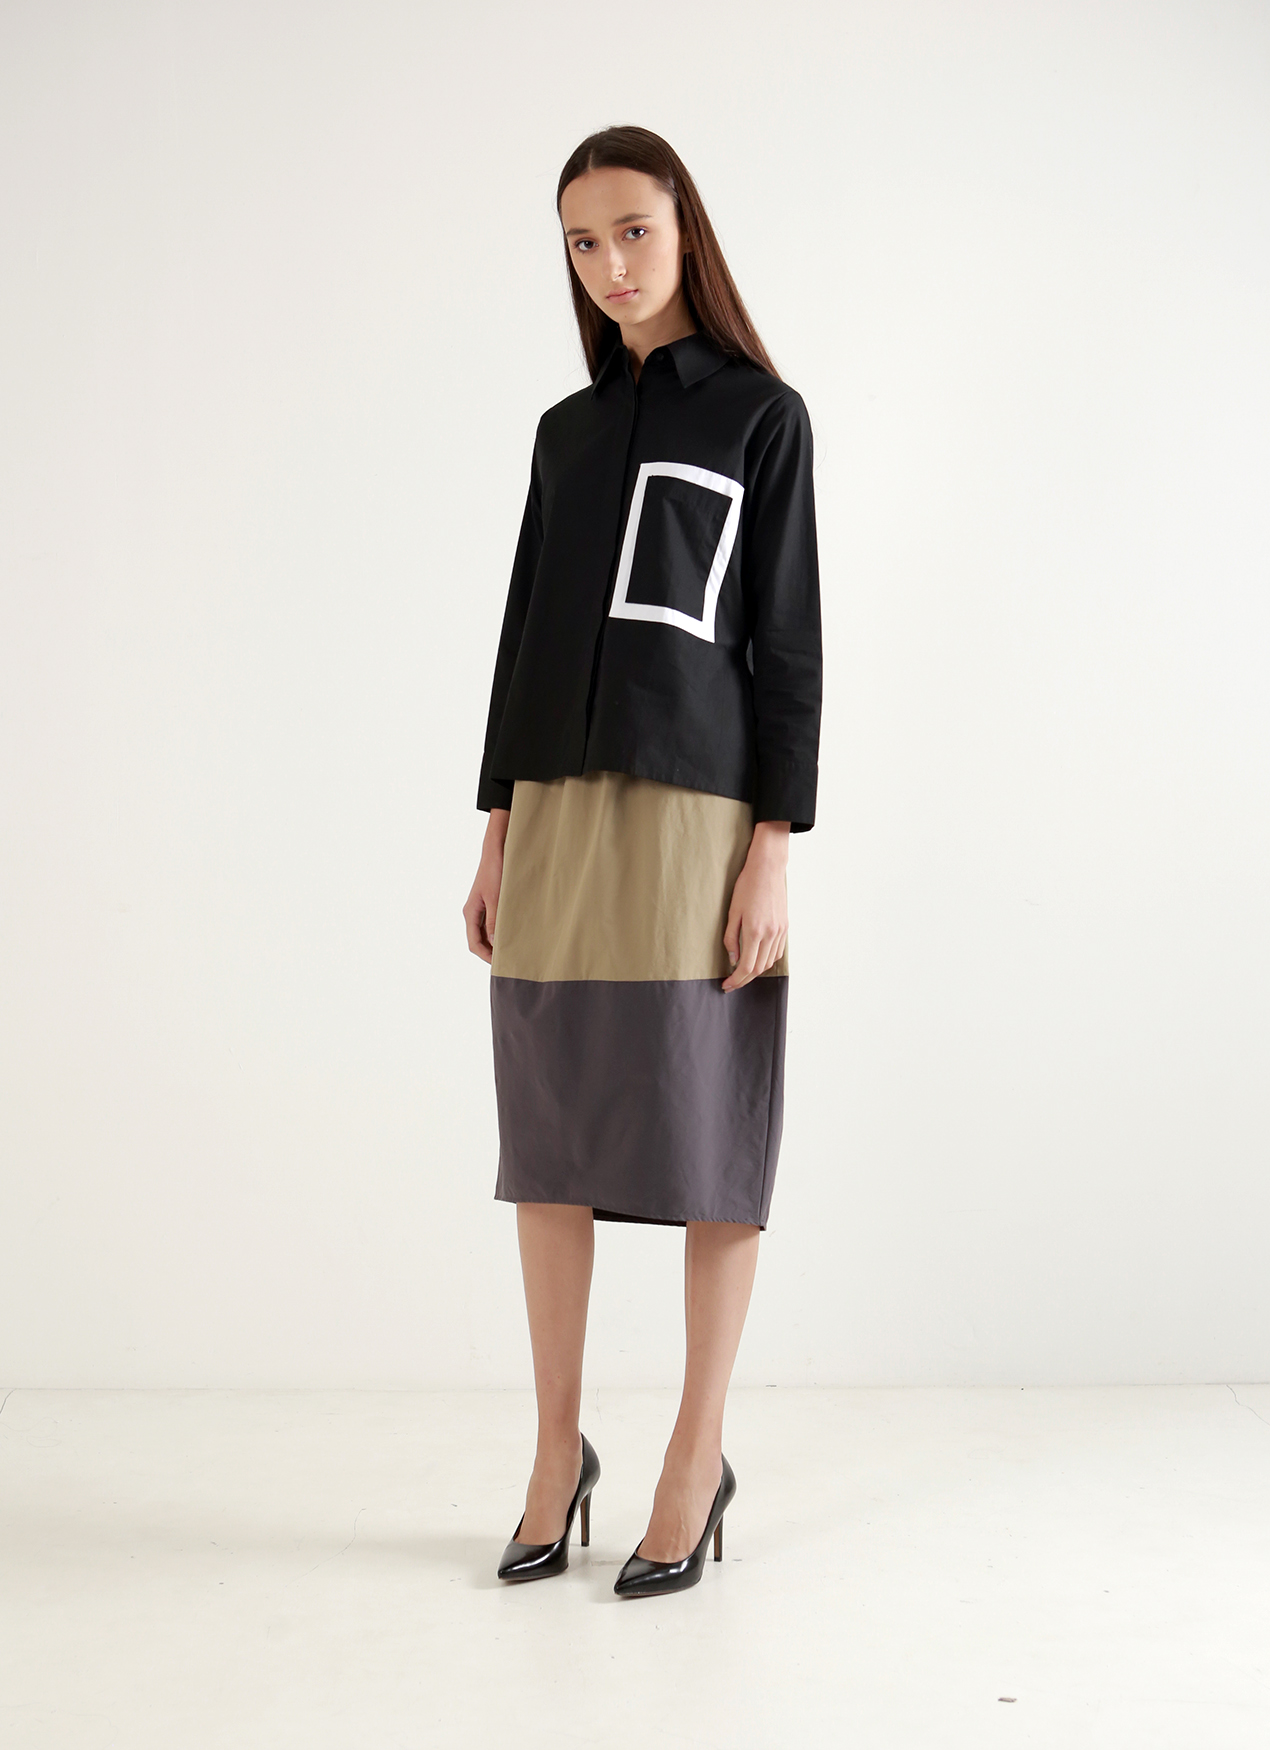 Wastu Drum Skirt - Brown